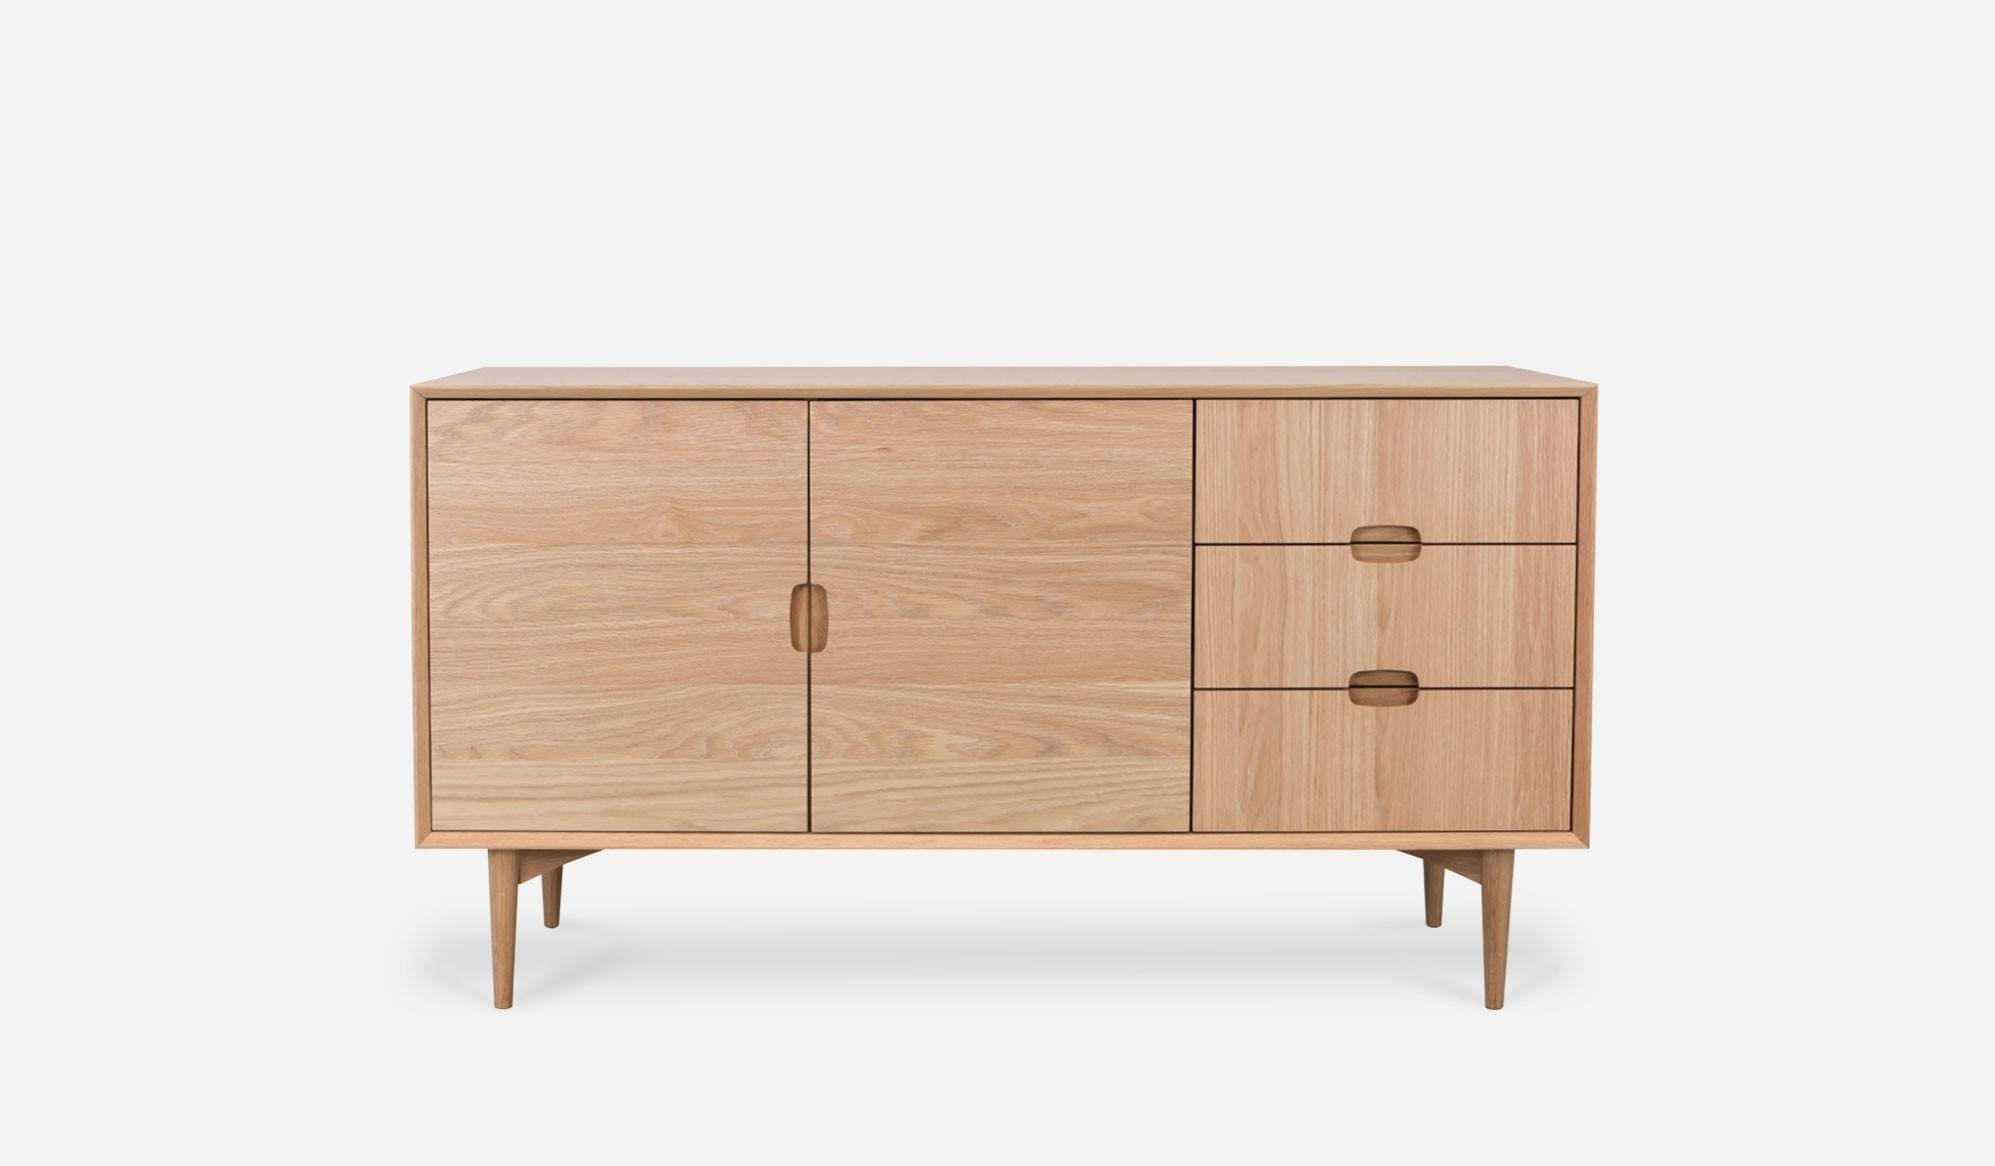 Sideboards That Will Work Great For Any Home! | Home & Decor Singapore Within Most Current Singapore Sideboards And Buffets (#15 of 15)